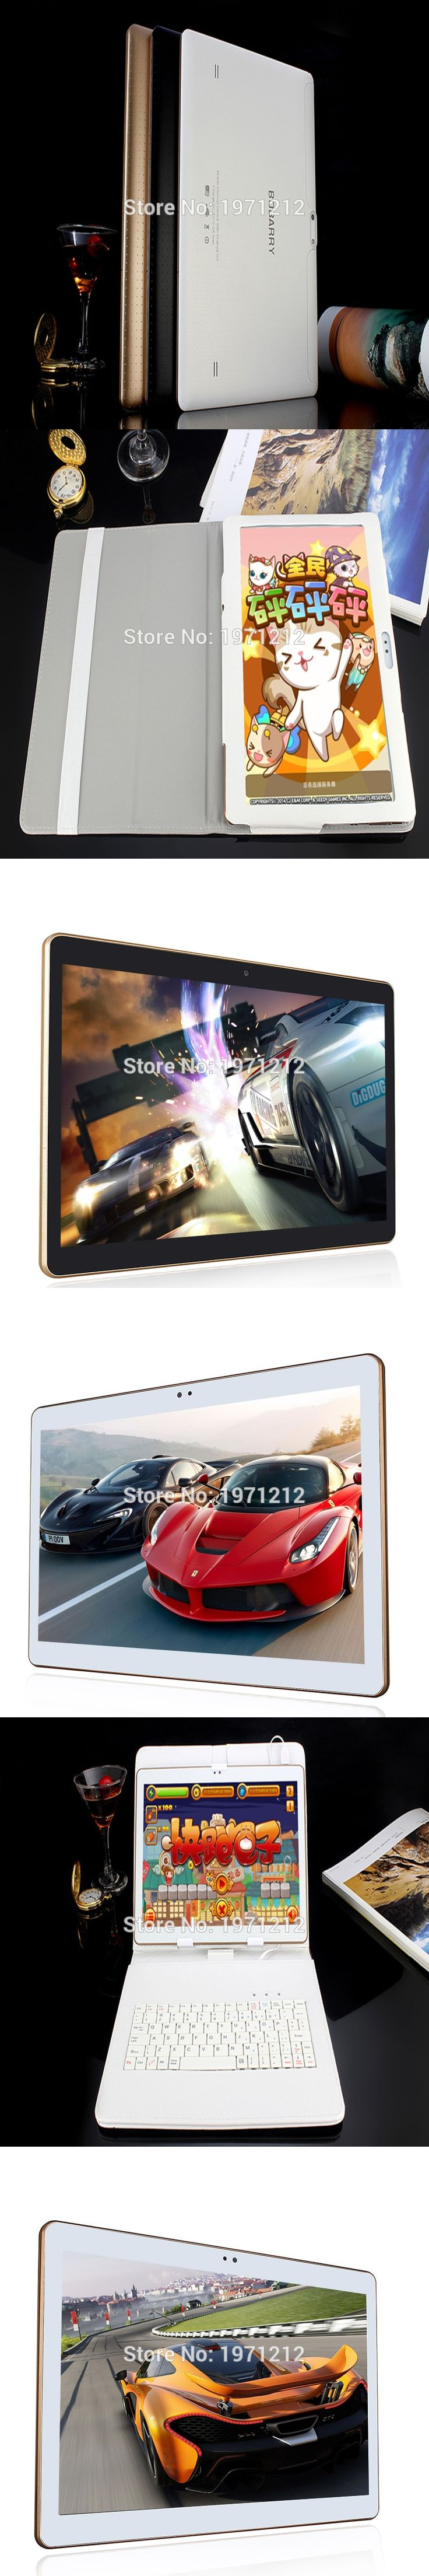 "10.1"" Tablet PC 3g 4g tablet Octa Core 1280 * 800 ips 5.0mp 4g ram rom 128gb android 5.1 gps bluetooth Dual sim card Phone Call"